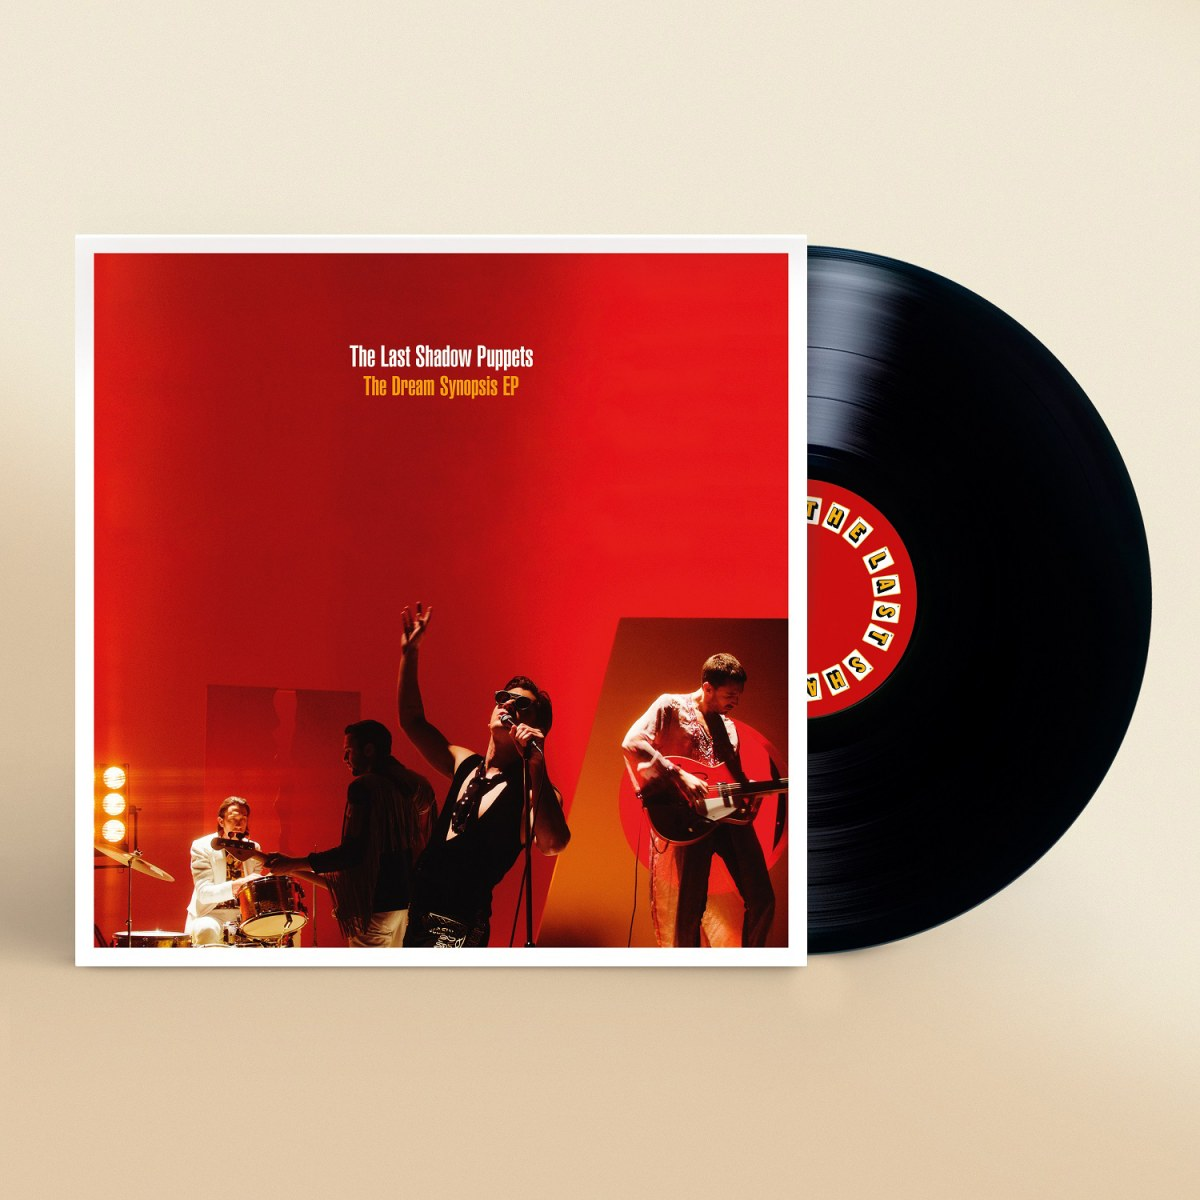 The Last Shadow Puppets The Dream Synopsis Ep Vinyl 12 Ep Domino Mart Domino